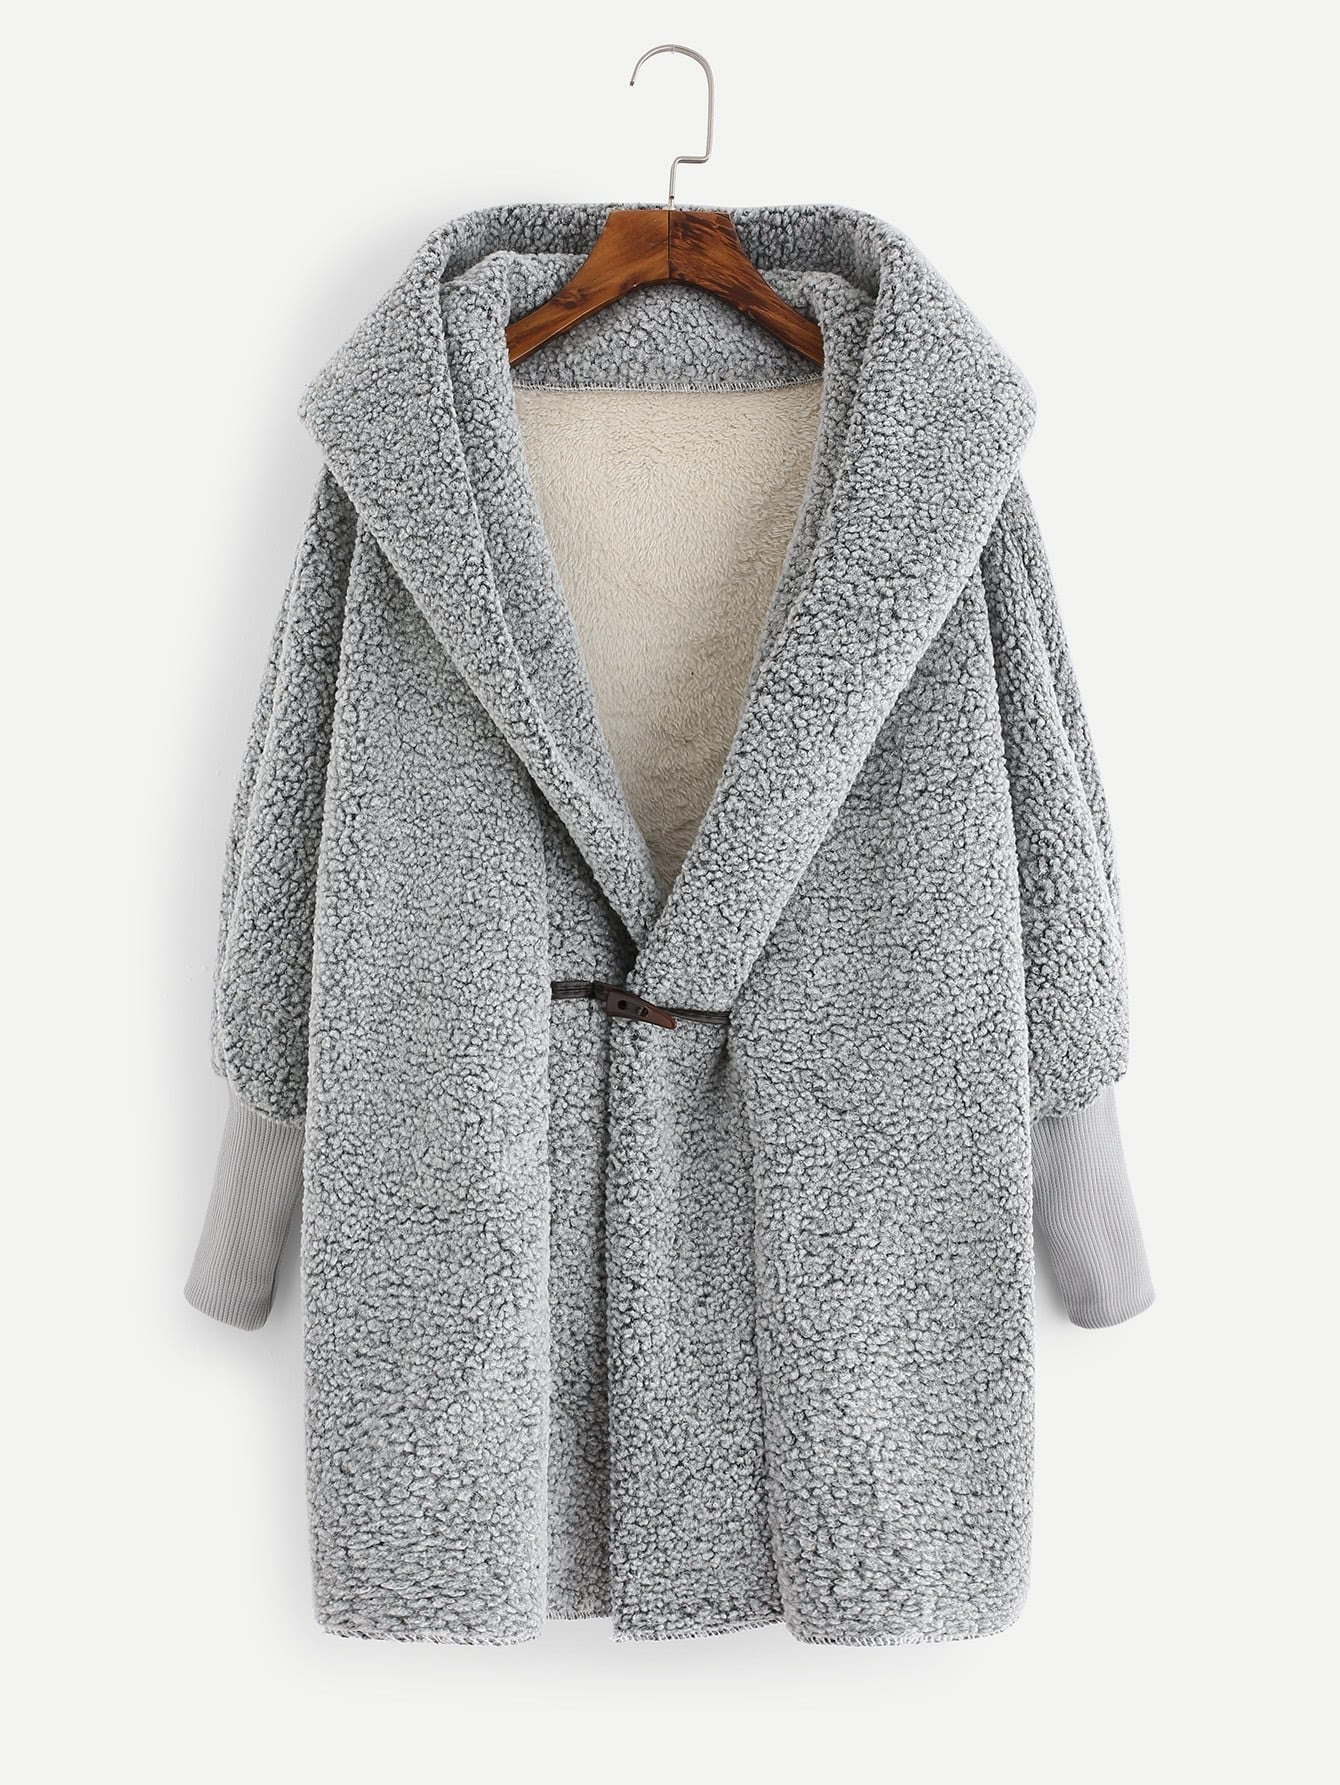 Faux Shearling Hooded Coat dotfashion faux fur hooded shearling lined coat 2017 grey zipper long sleeve top female single breasted knee length coat